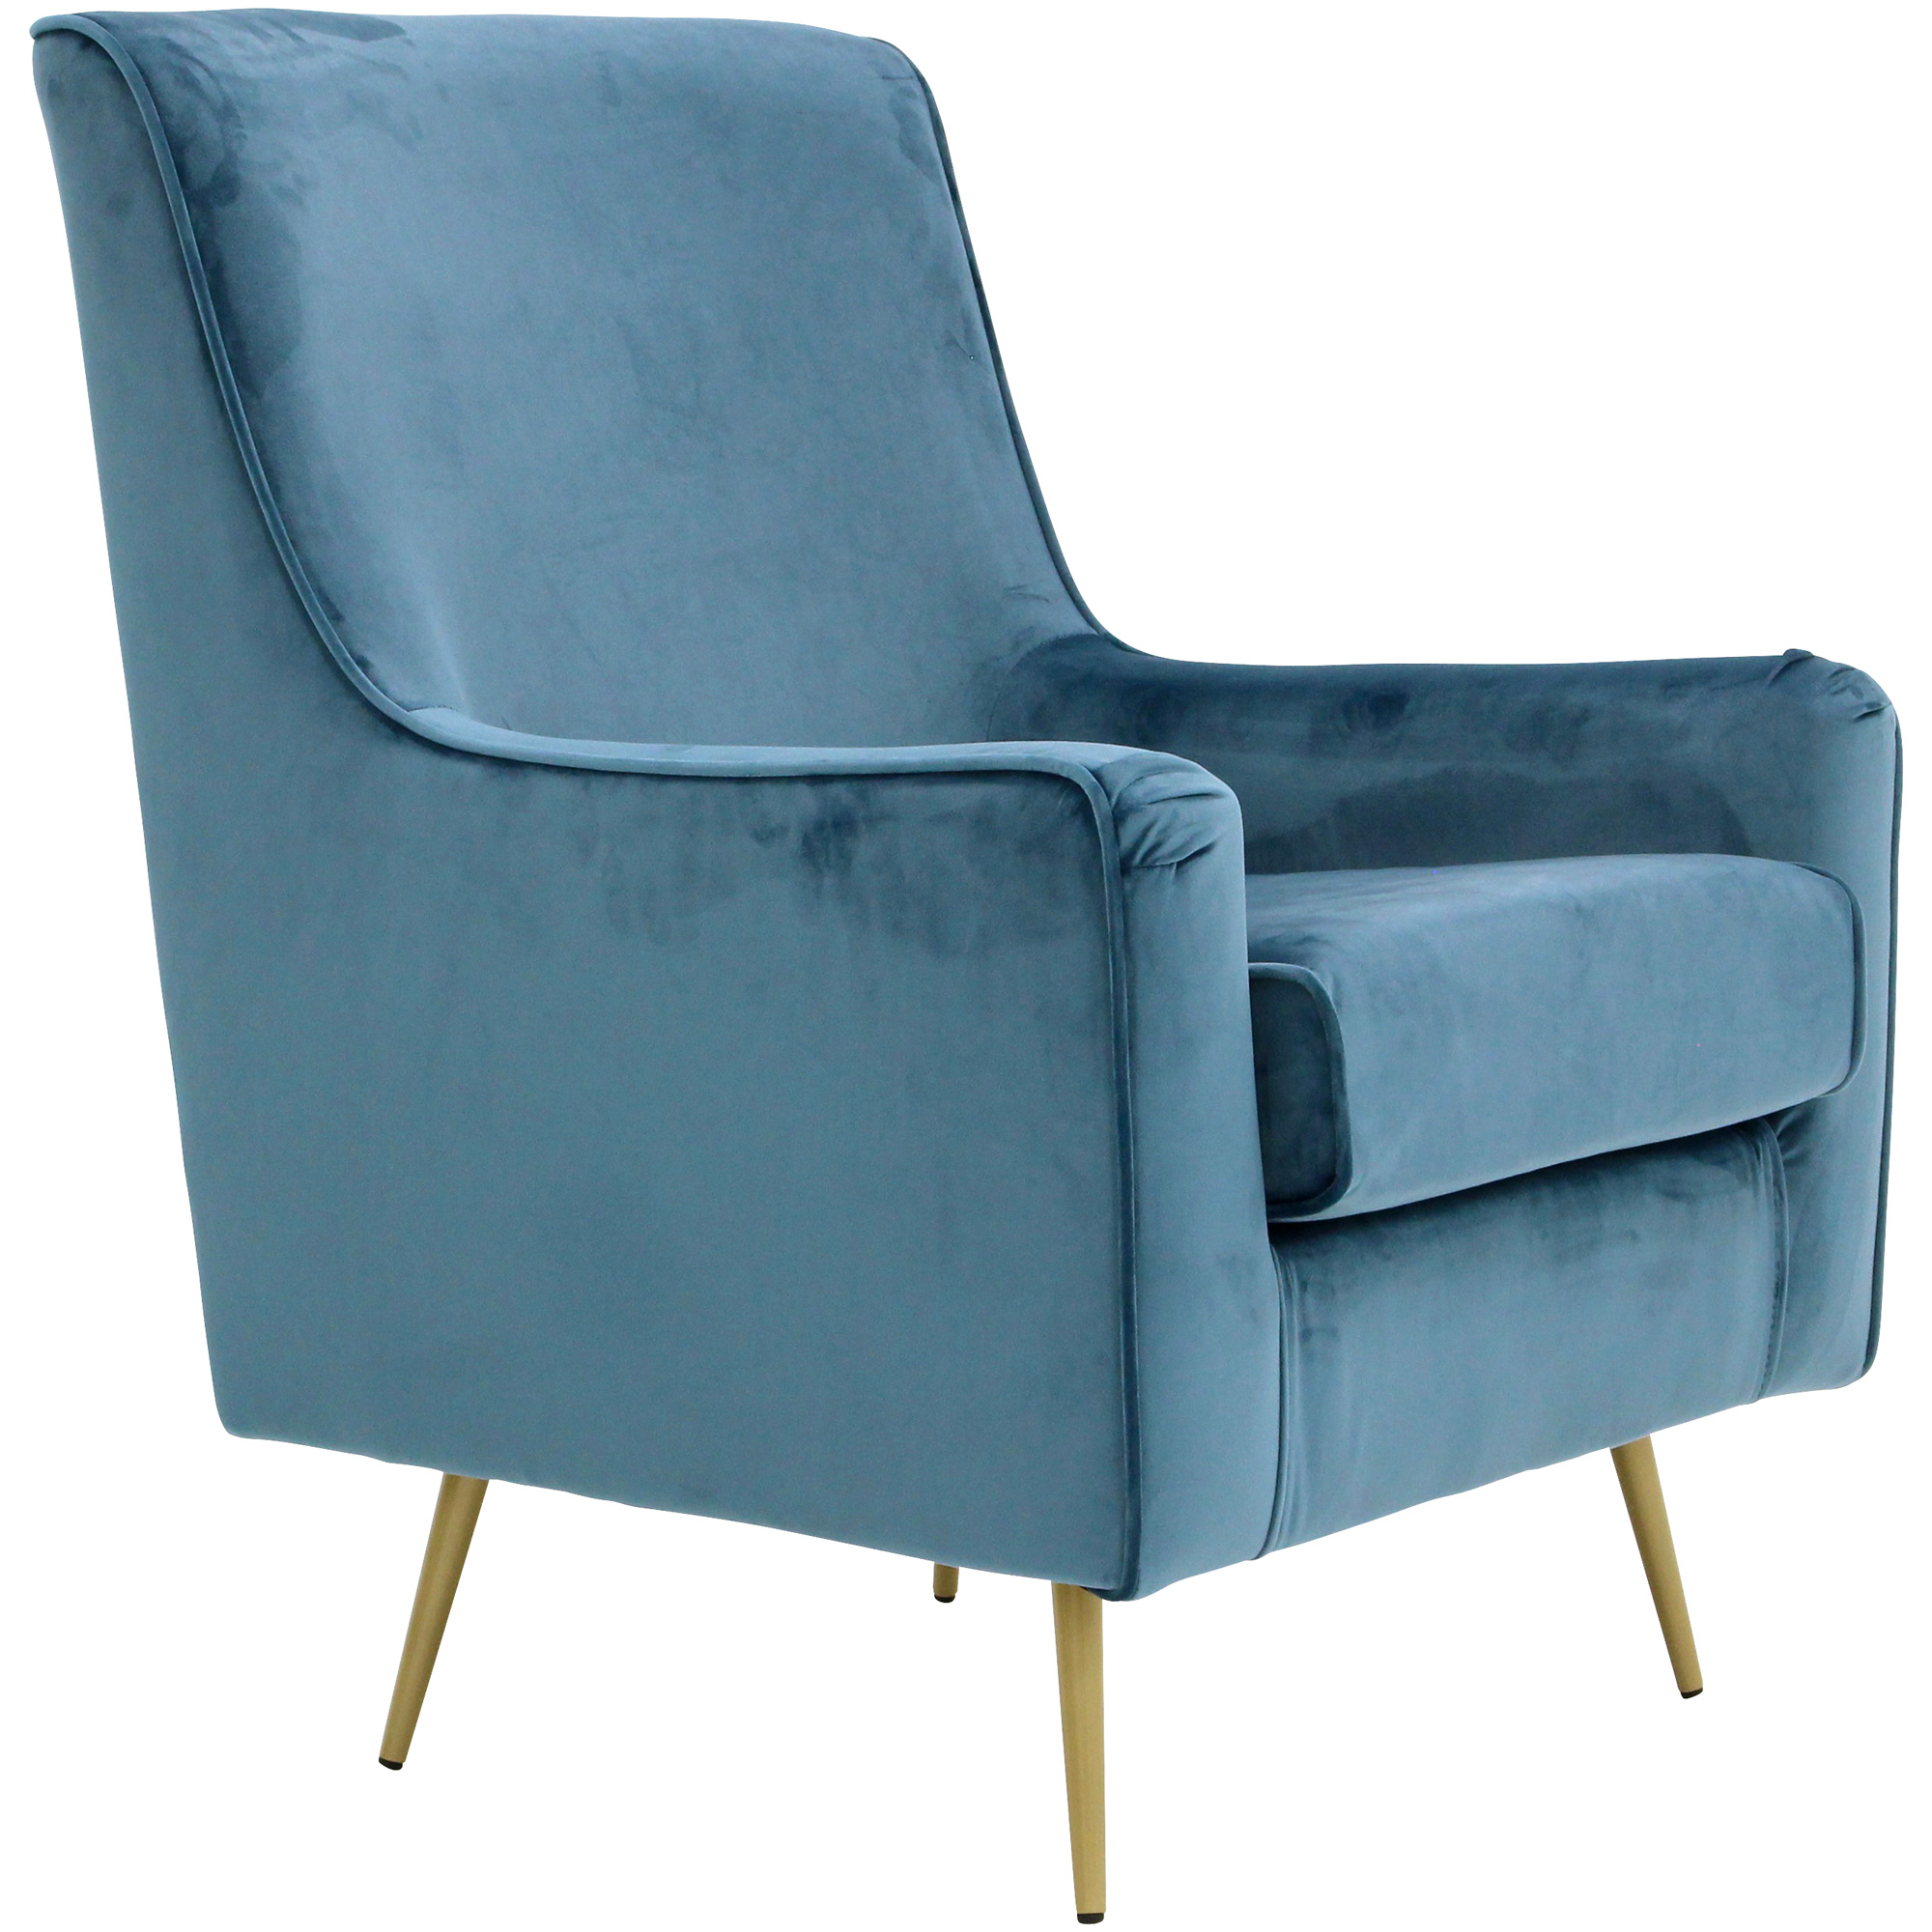 Overman | Lana Teal Accent Chair